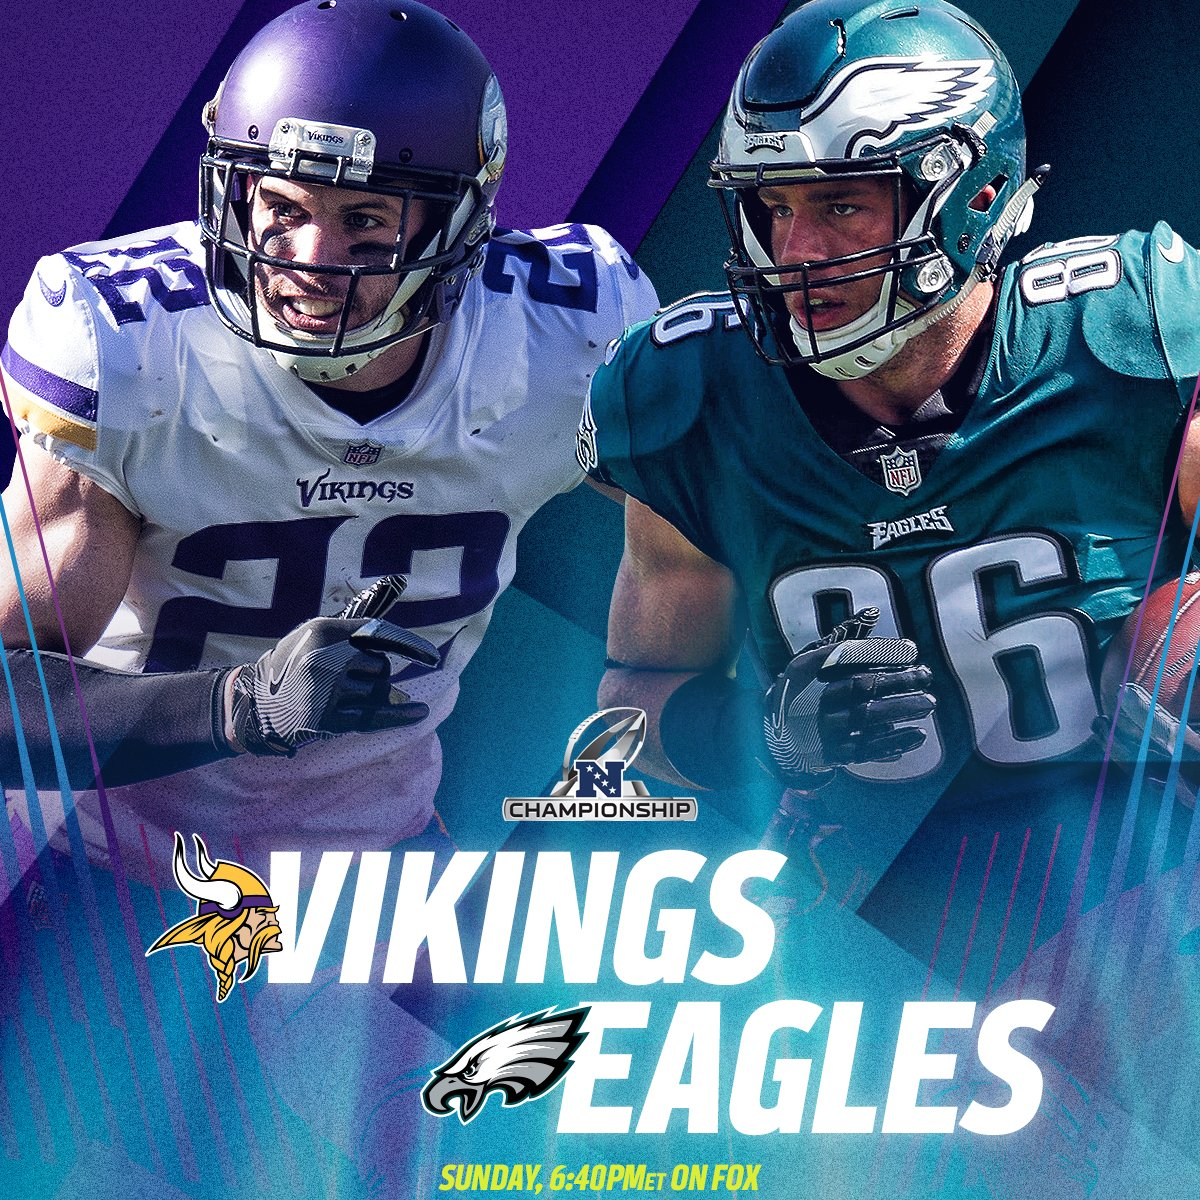 RT @NFL: .@Vikings. @Eagles.  See you on Championship Sunday. #NFLPlayoffs #MINvsPHI https://t.co/5Rg6deKMdb